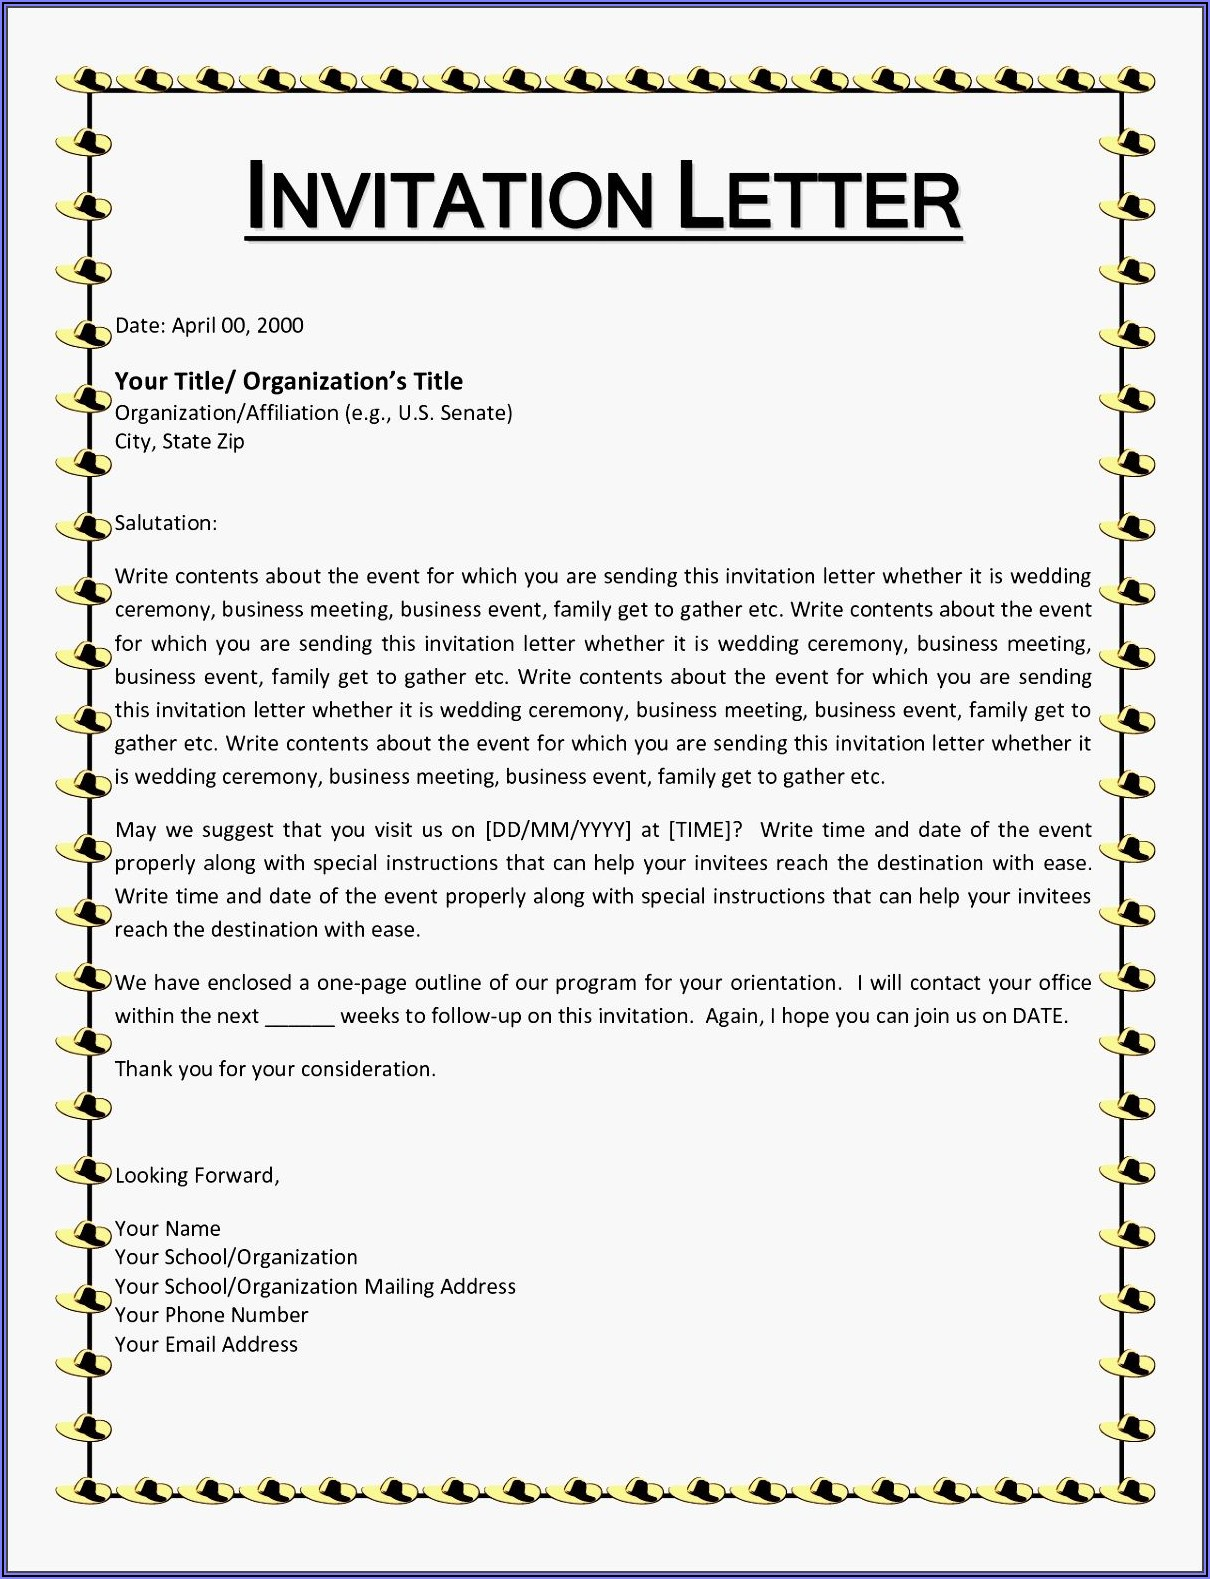 Wedding Invitation Letter To Colleagues